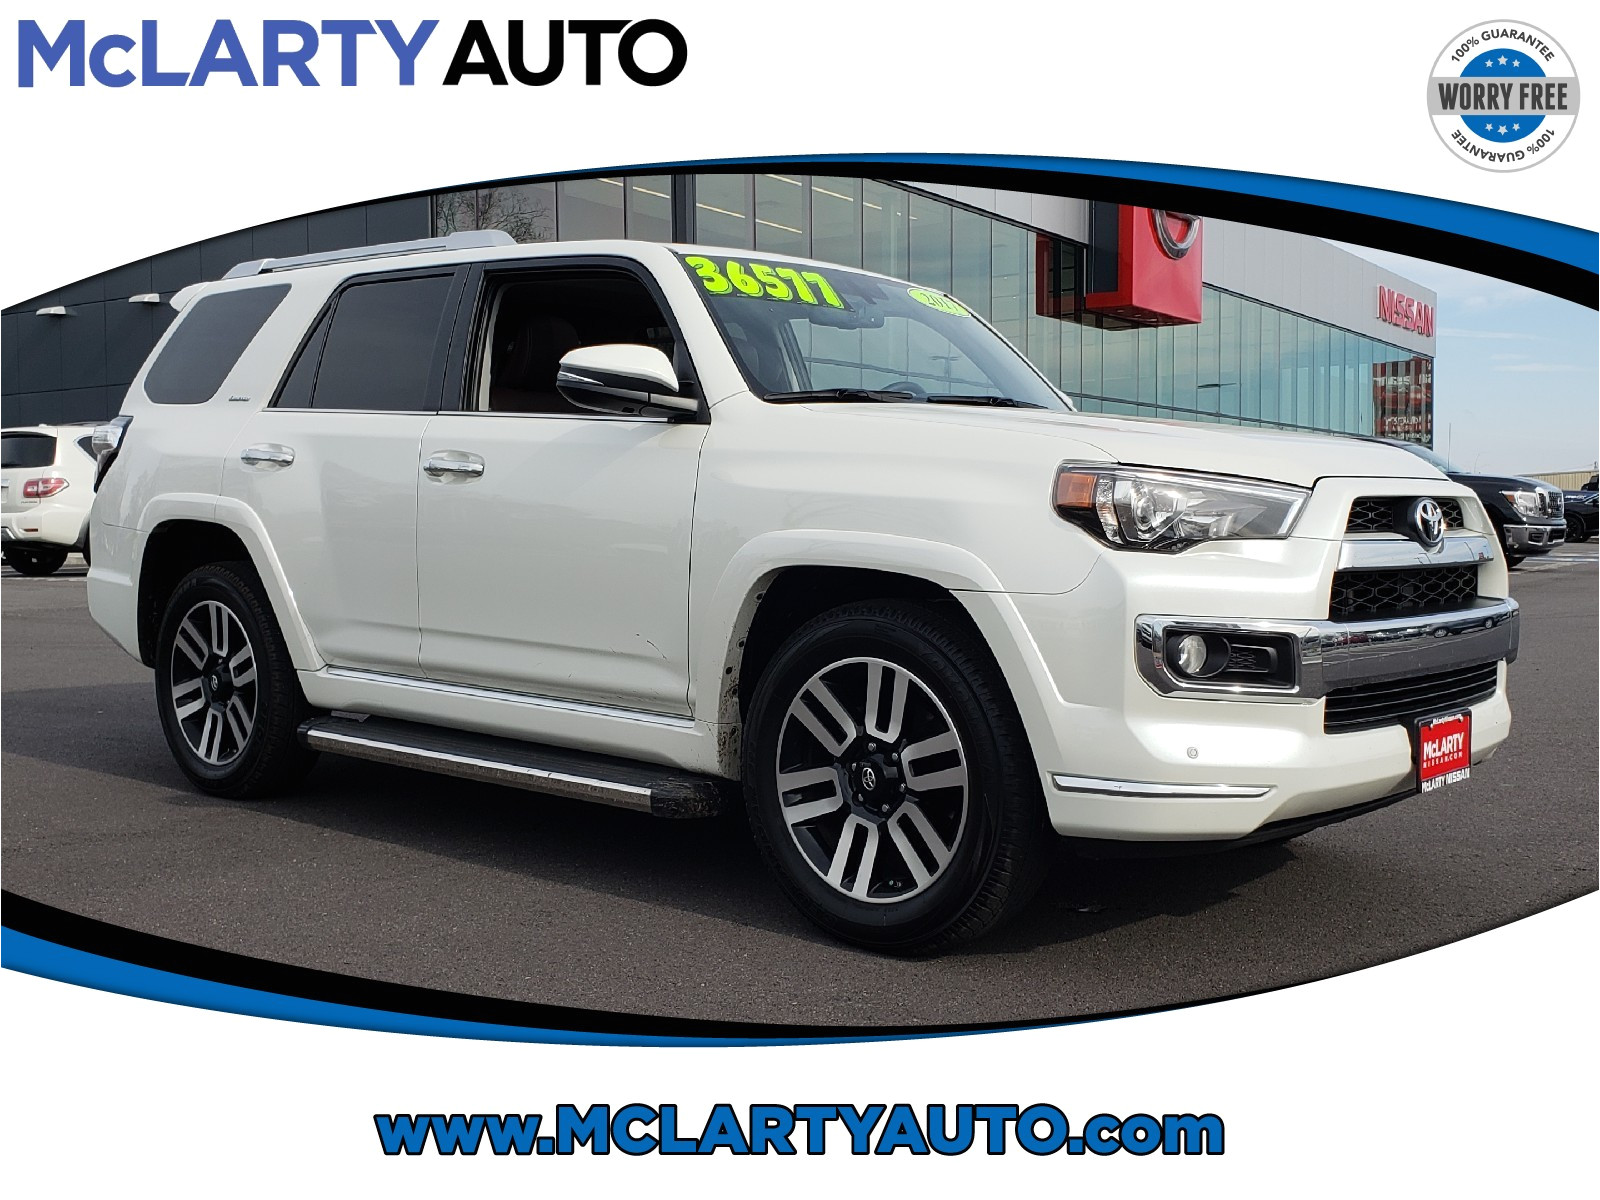 2017 toyota 4runner limited jtezu5jr8h5161003 mclarty nissan of benton benton ar